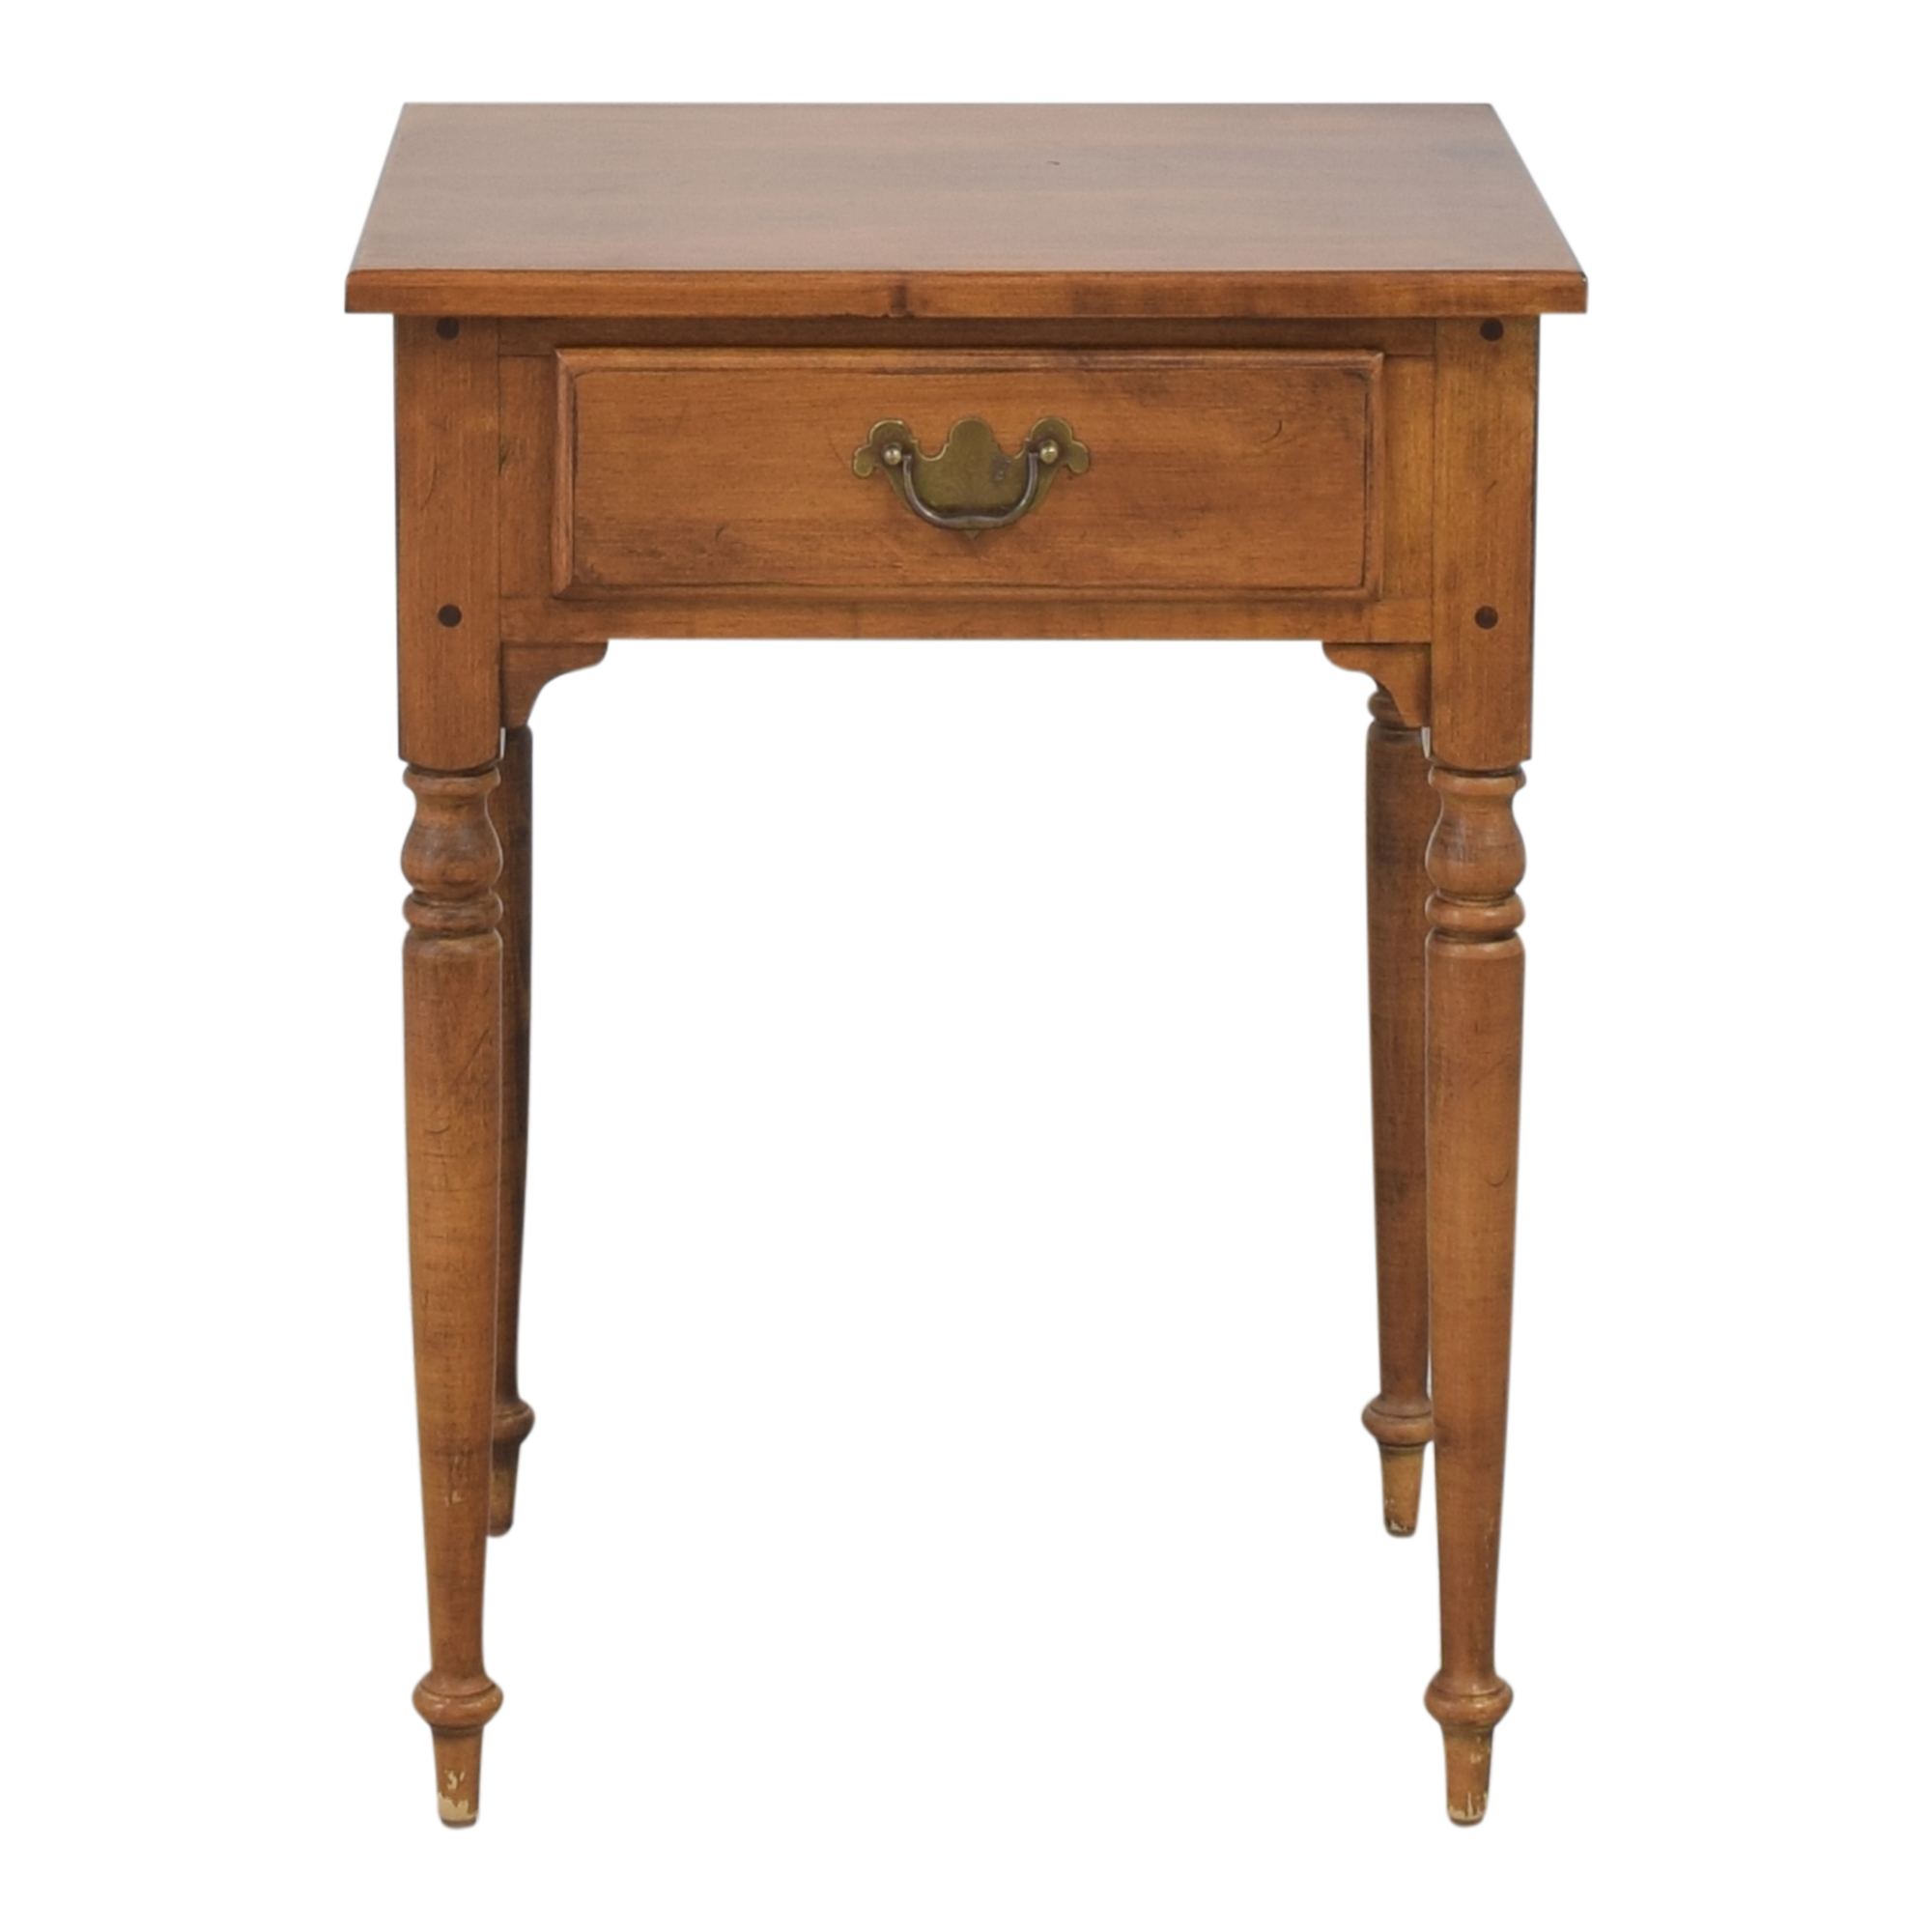 Ethan Allen Ethan Allen Heirloom Nightstand on sale